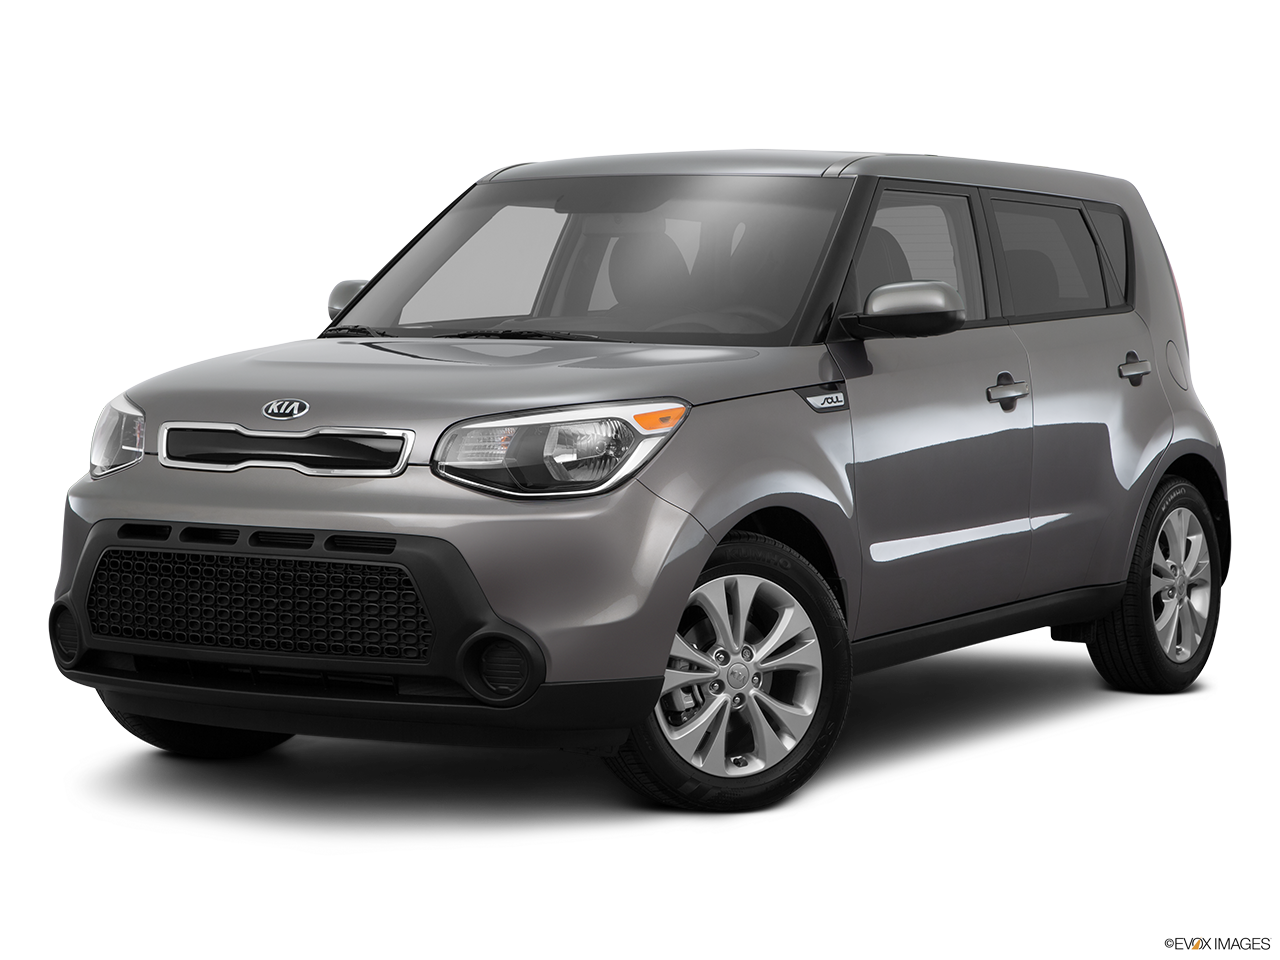 2015 kia soul dealer serving san bernardino valley hi kia. Black Bedroom Furniture Sets. Home Design Ideas